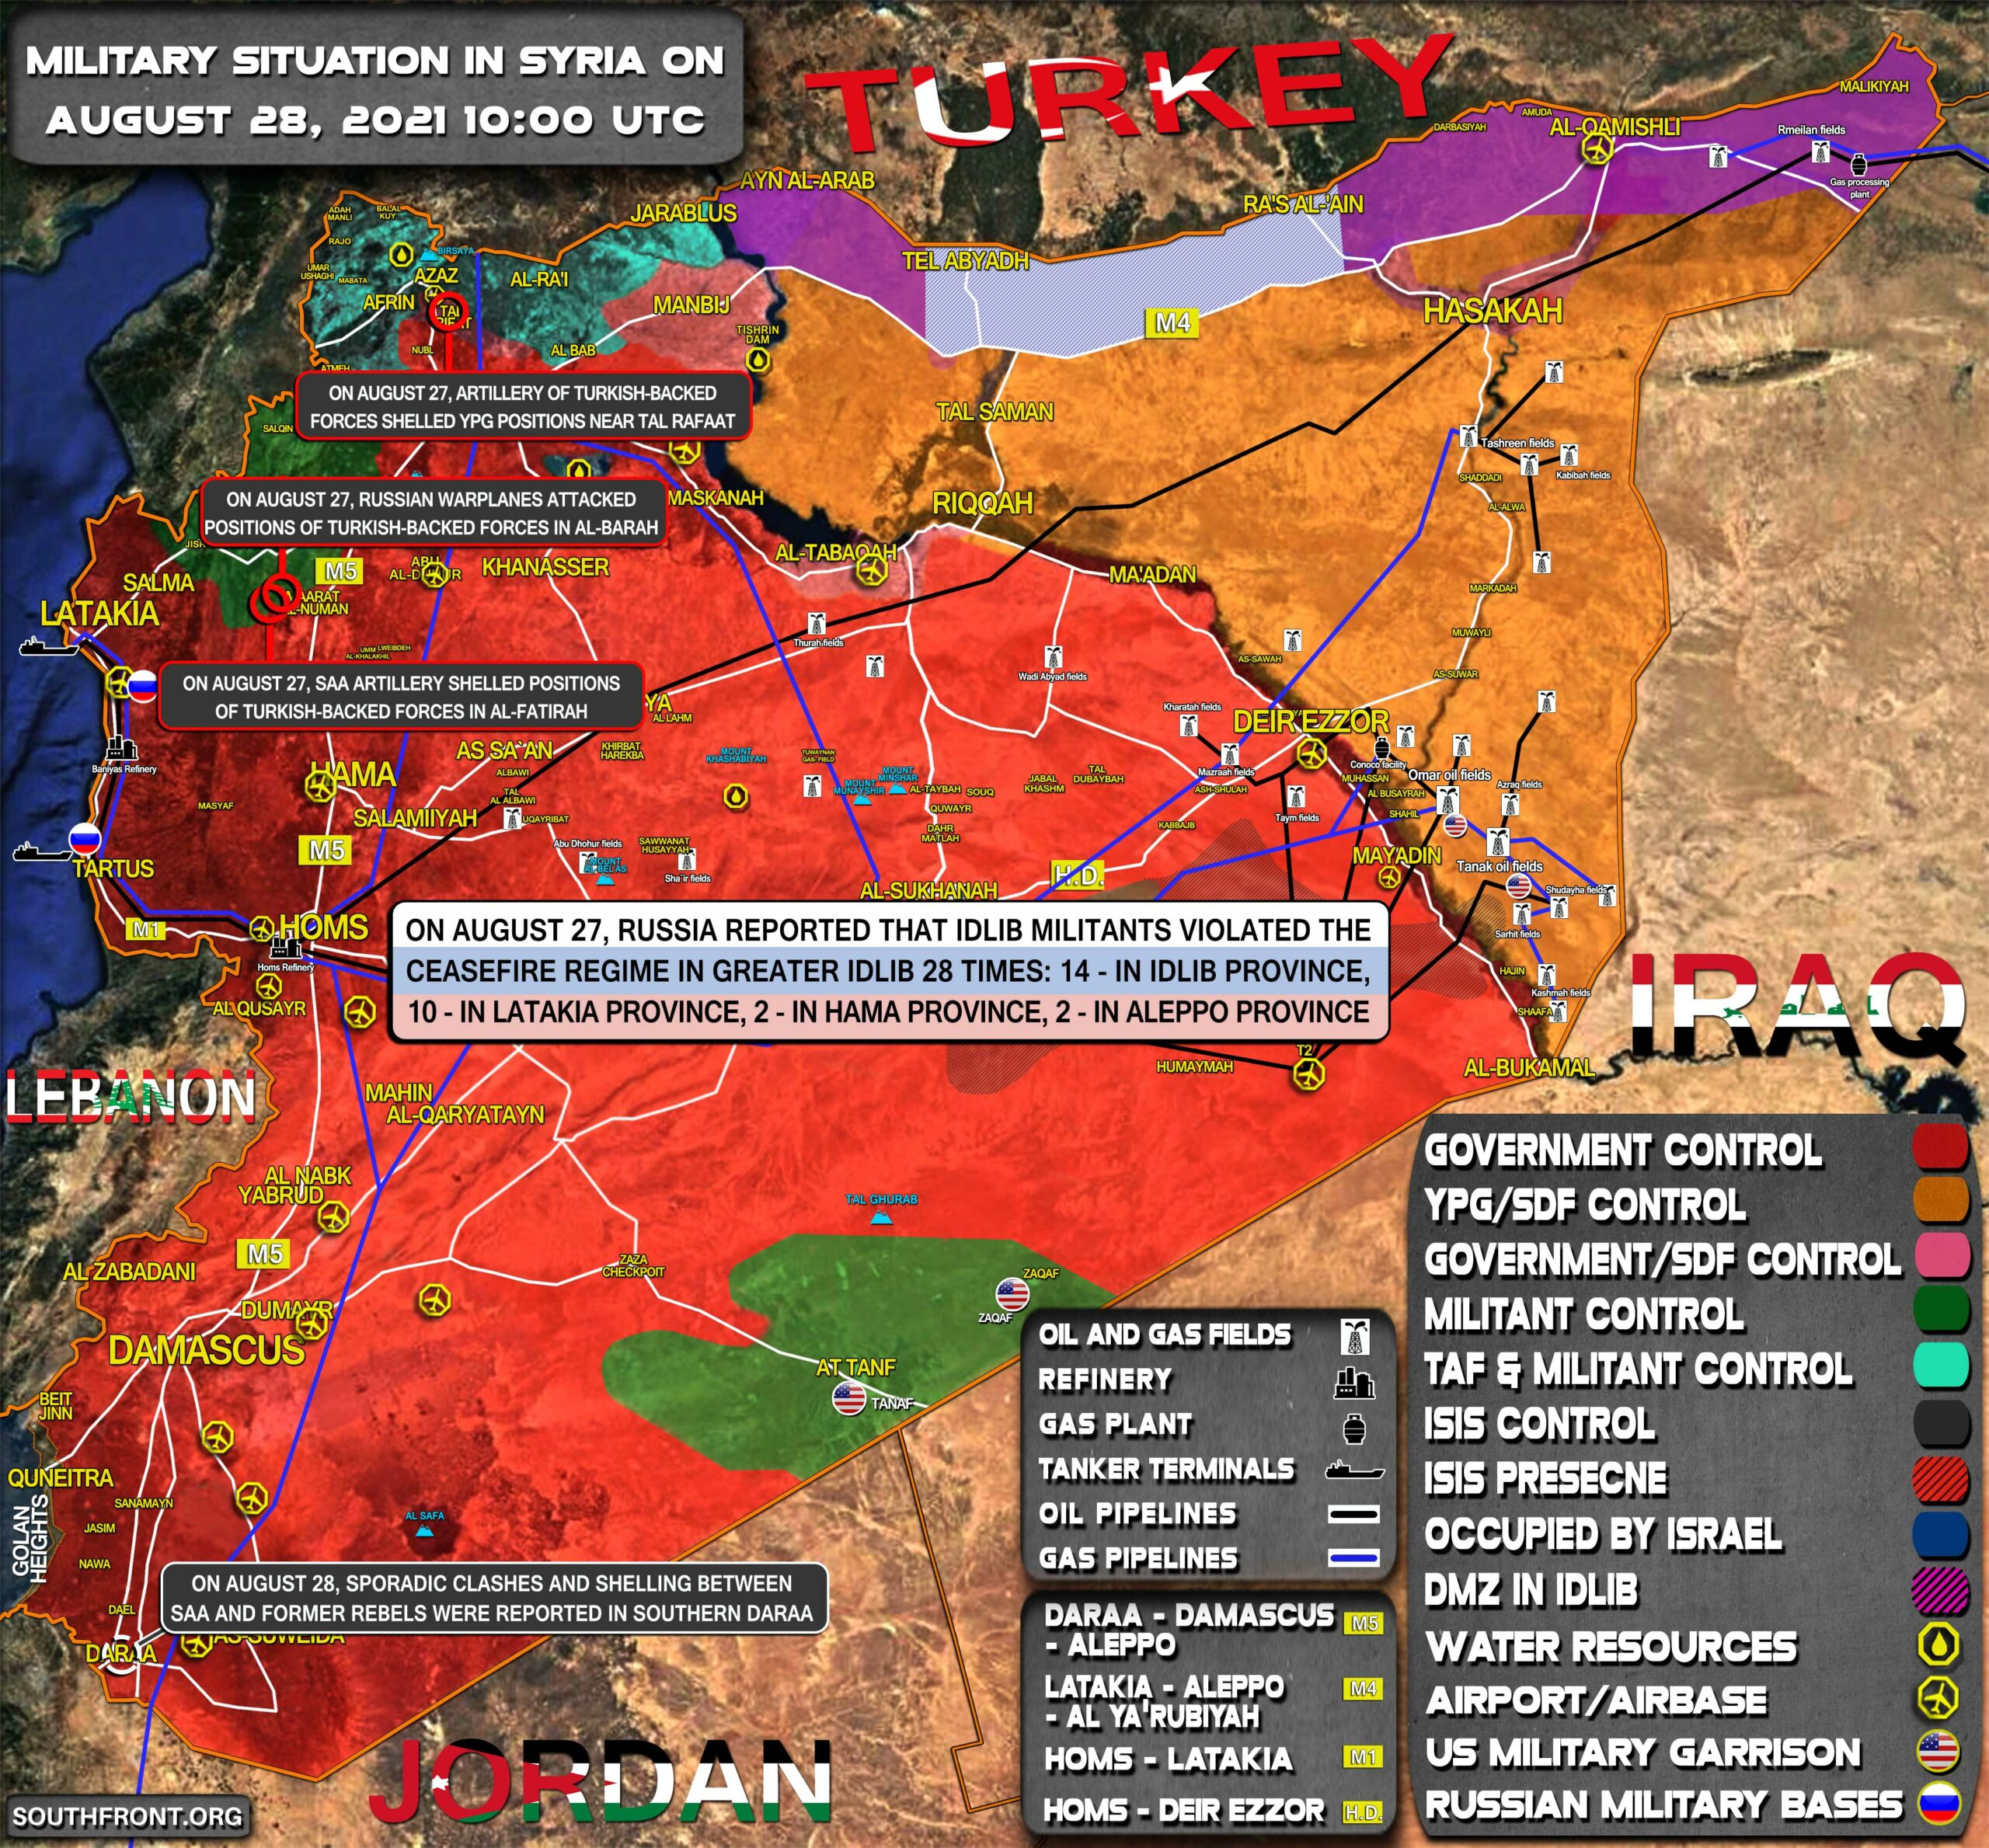 Military Situation In Syria On August 28, 2021 (Map Update)